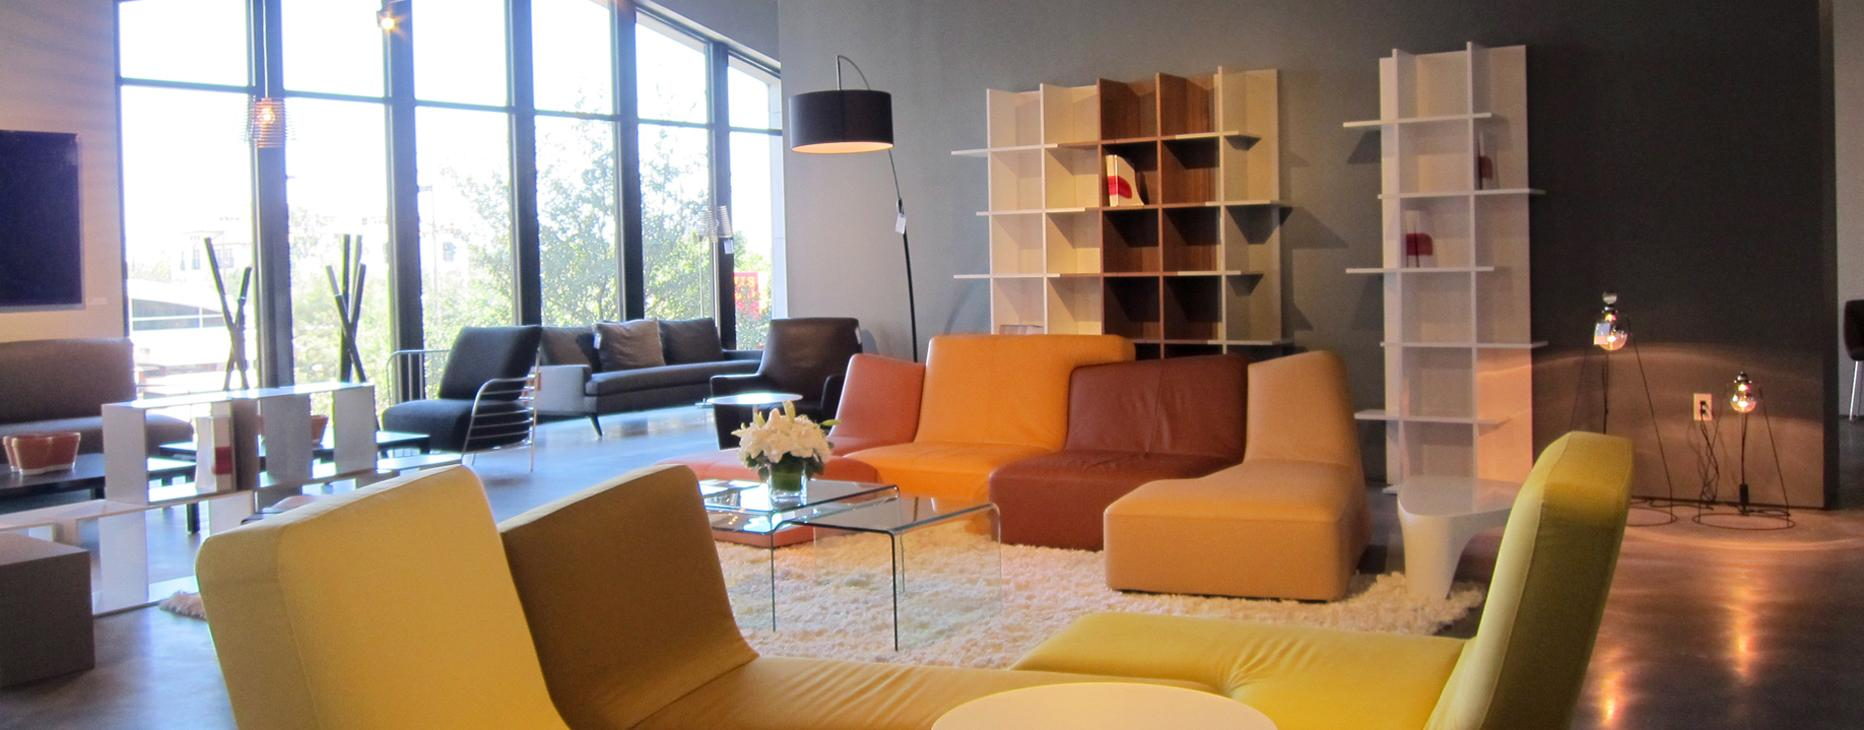 Ligne Roset Houston Design Furniture Store Made In France